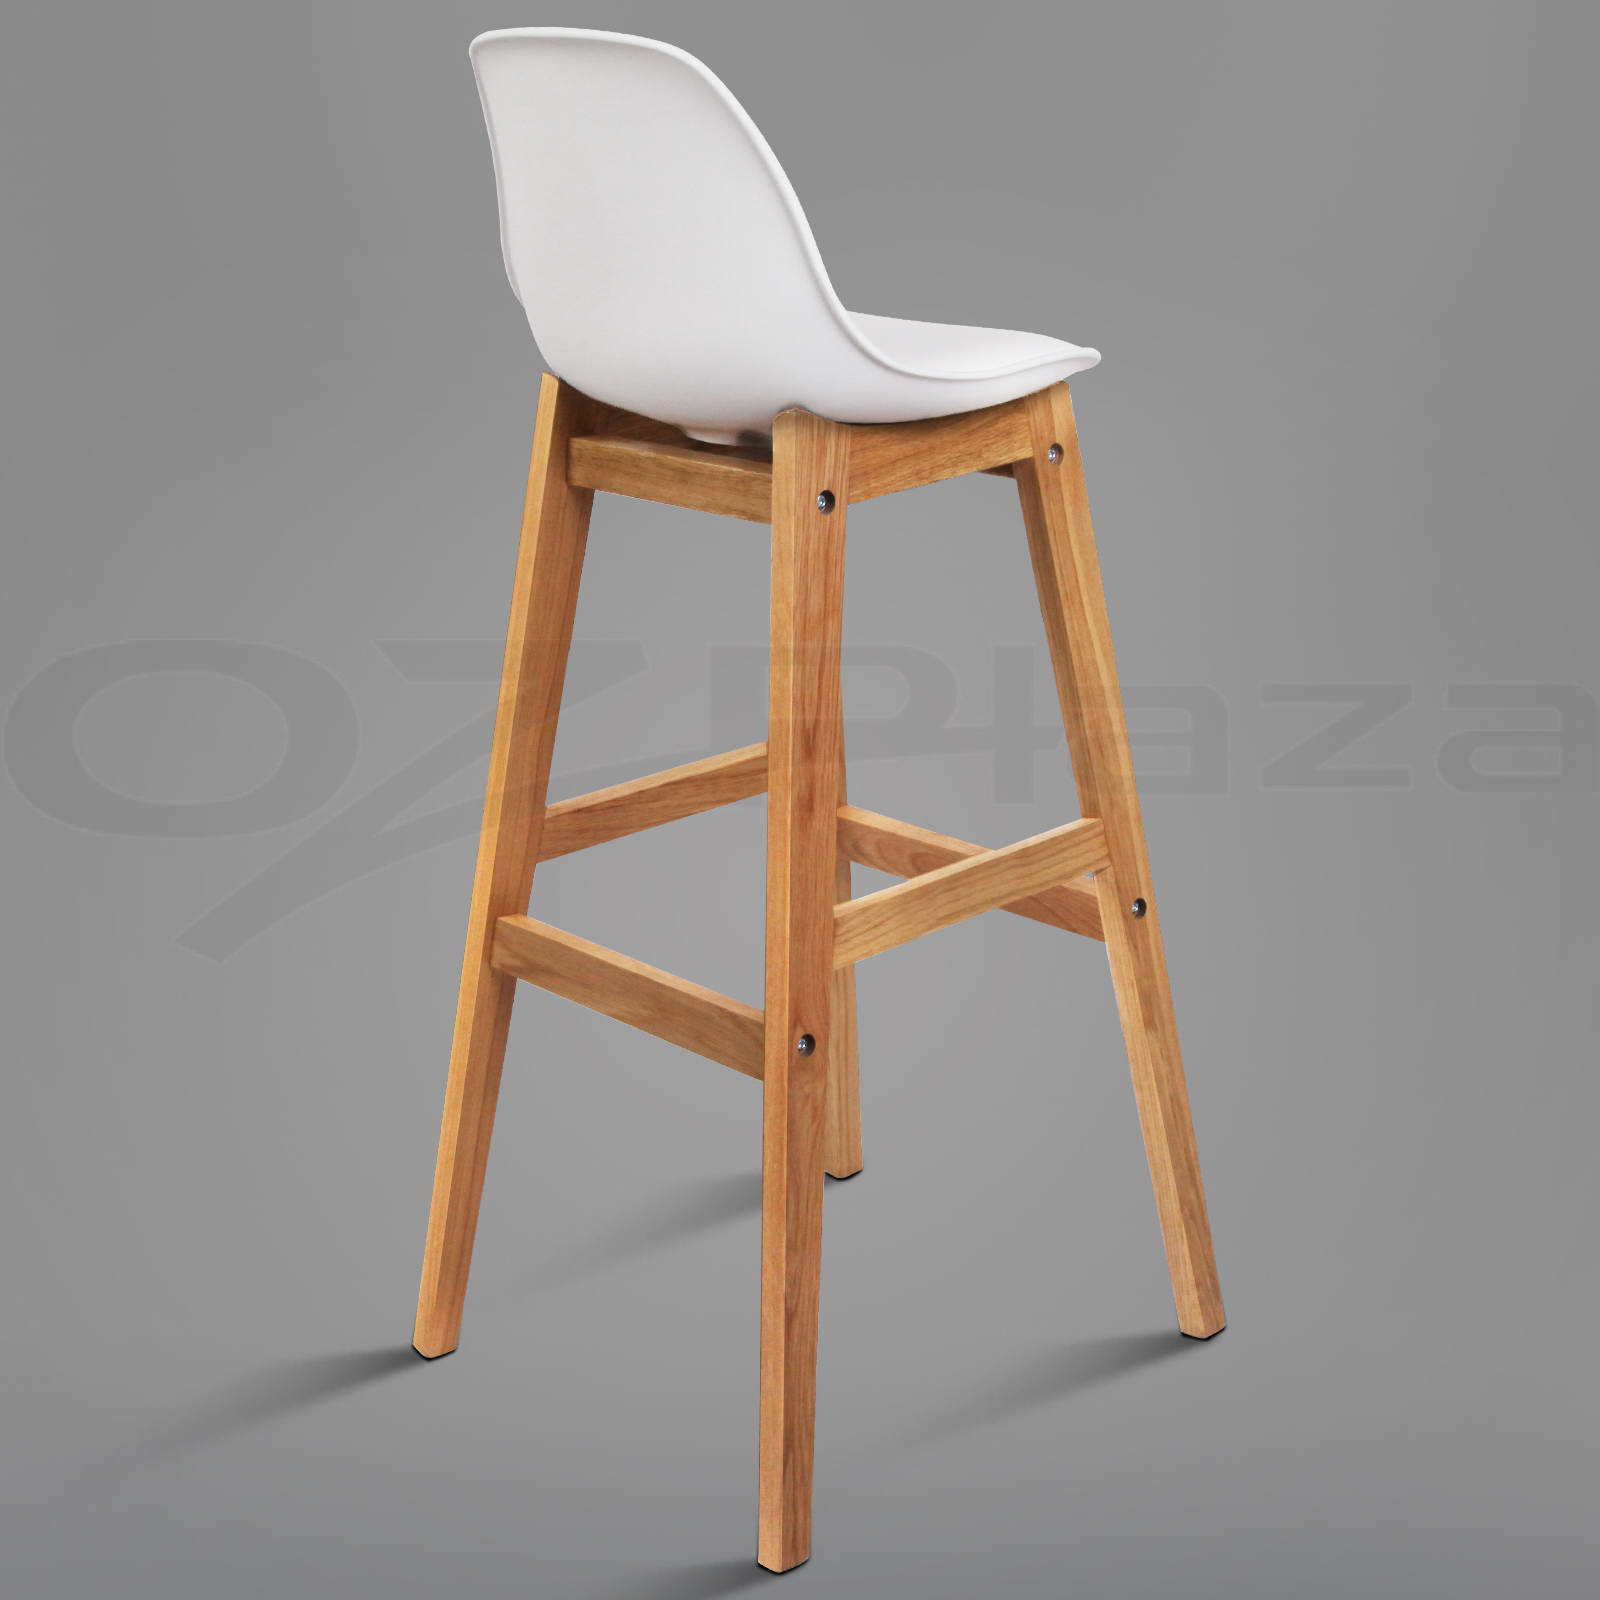 4x Oak Wood Bar Stools Wooden Barstool Dining Chairs  : BA F 3601 WHX4 P09 from www.ebay.com.au size 1600 x 1600 jpeg 118kB